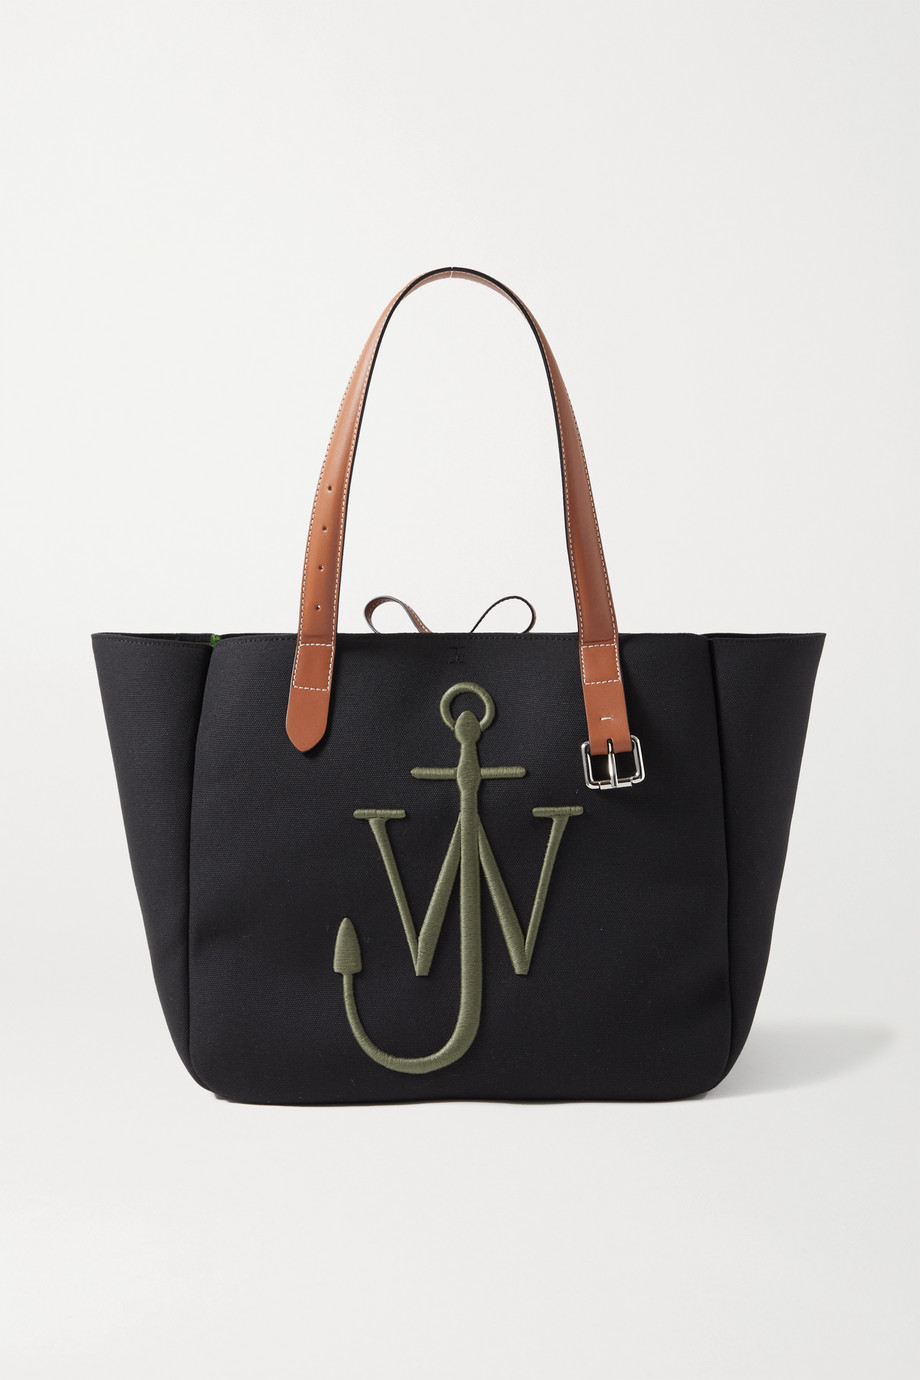 JW앤더슨 JW Anderson Leather-trimmed embroidered canvas tote,Black